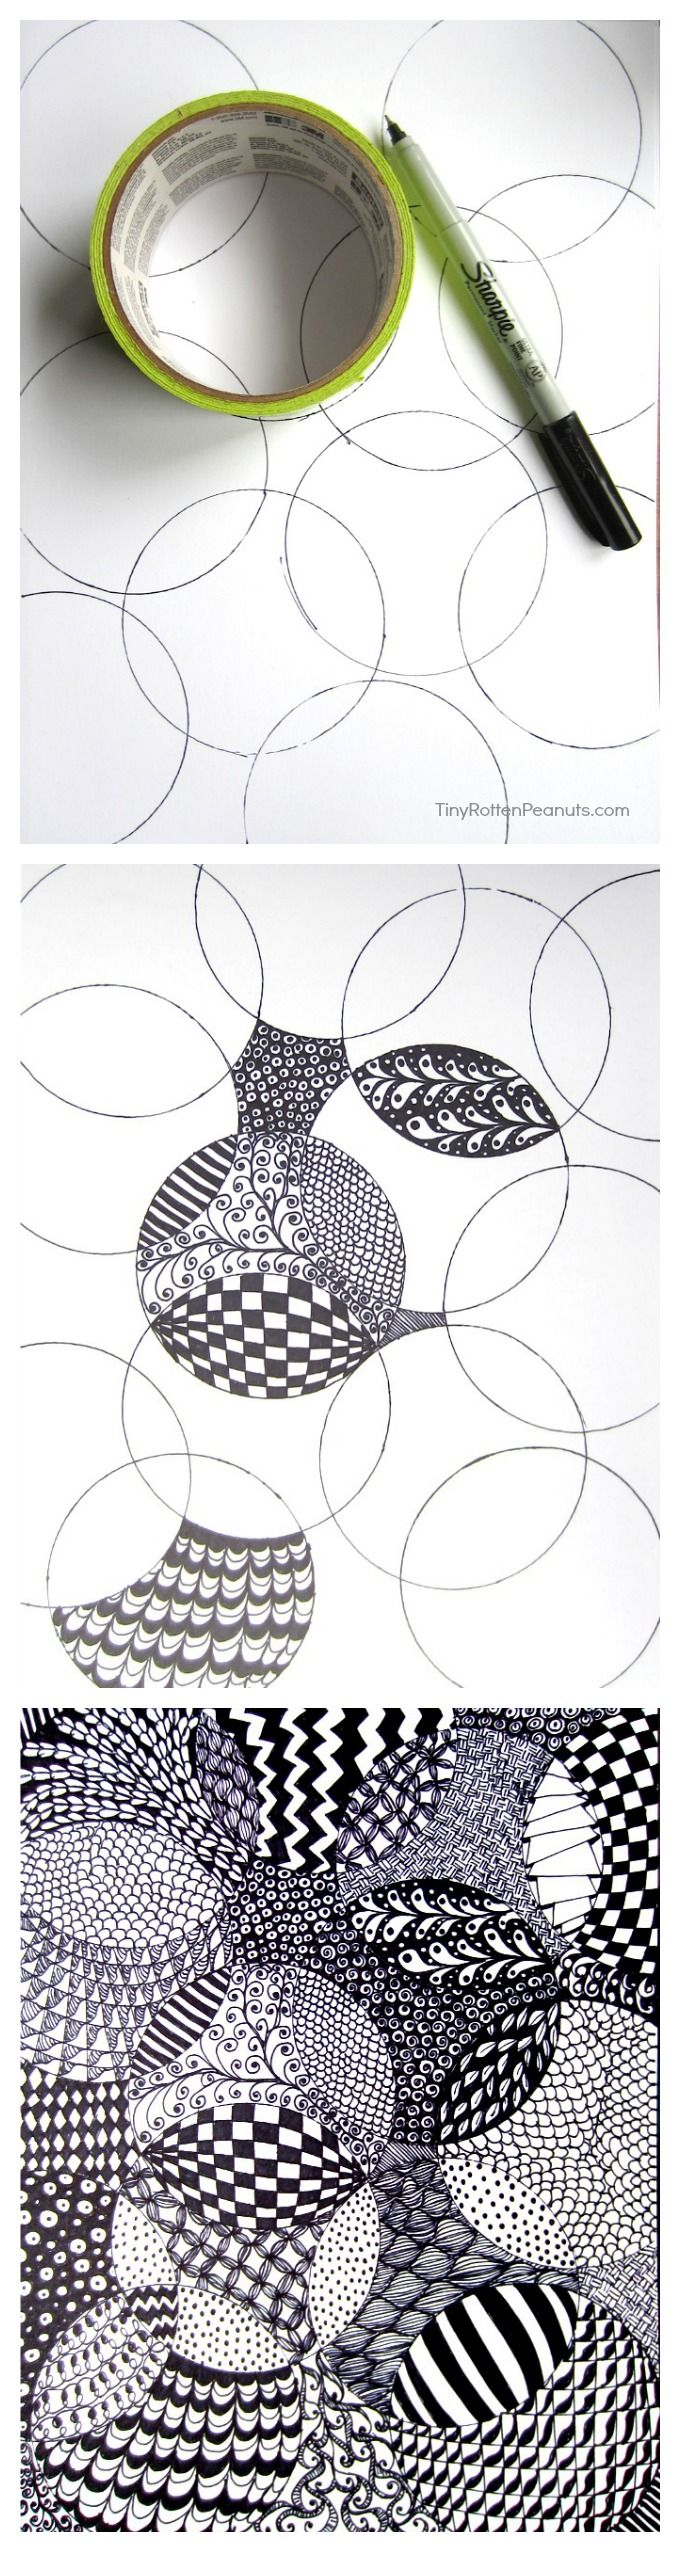 Totally easy zentangle circles for kids and zentangle for Good ideas for things to draw